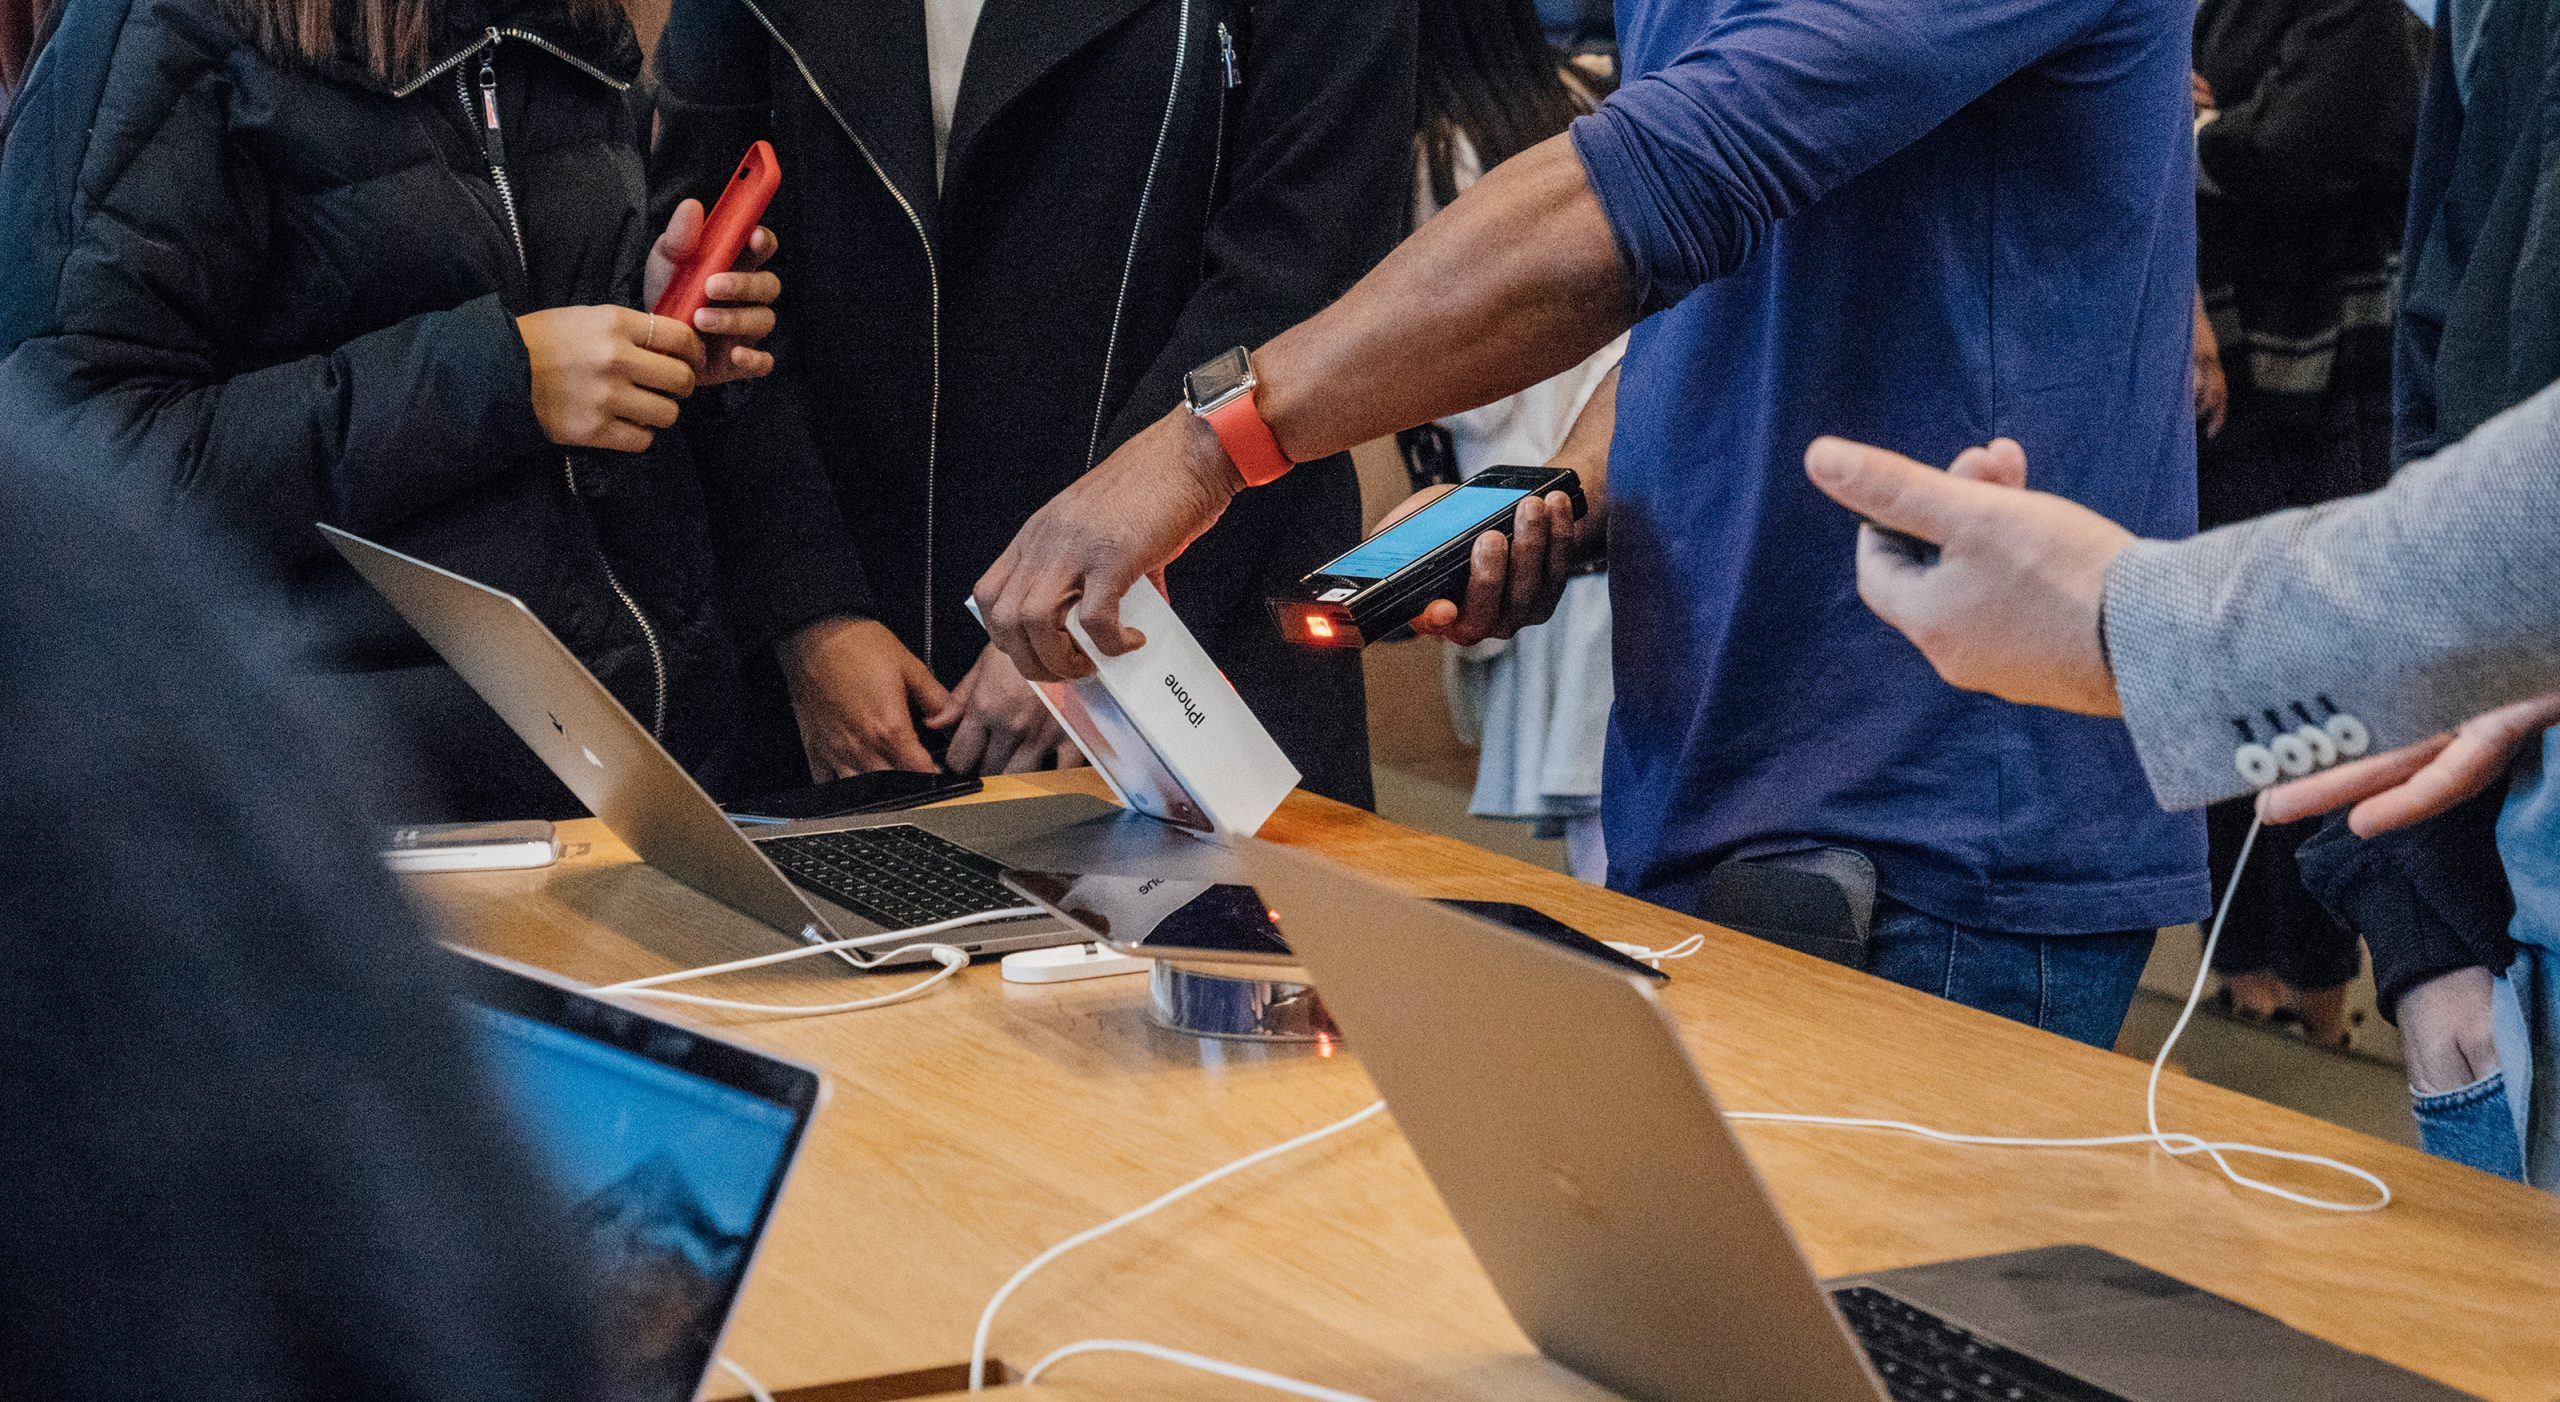 A customer experience at Apple